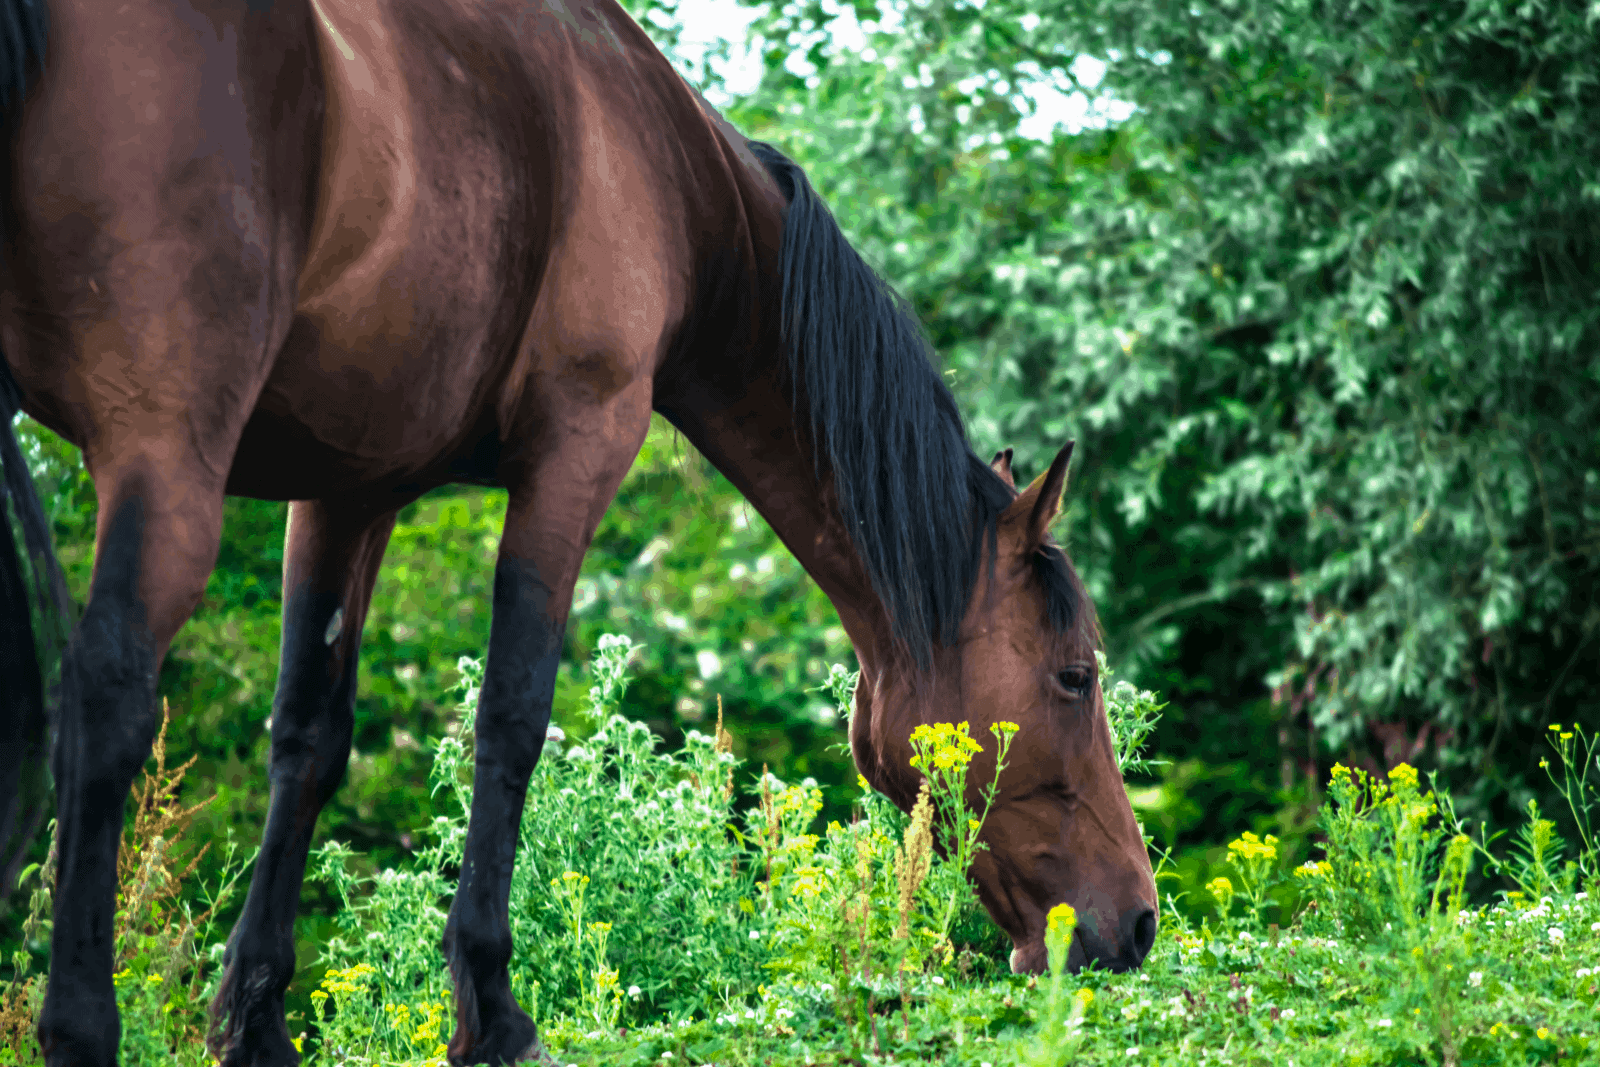 a hairy horse eating grasses beside yellow wild flowers: can horses eat pine needles instead?